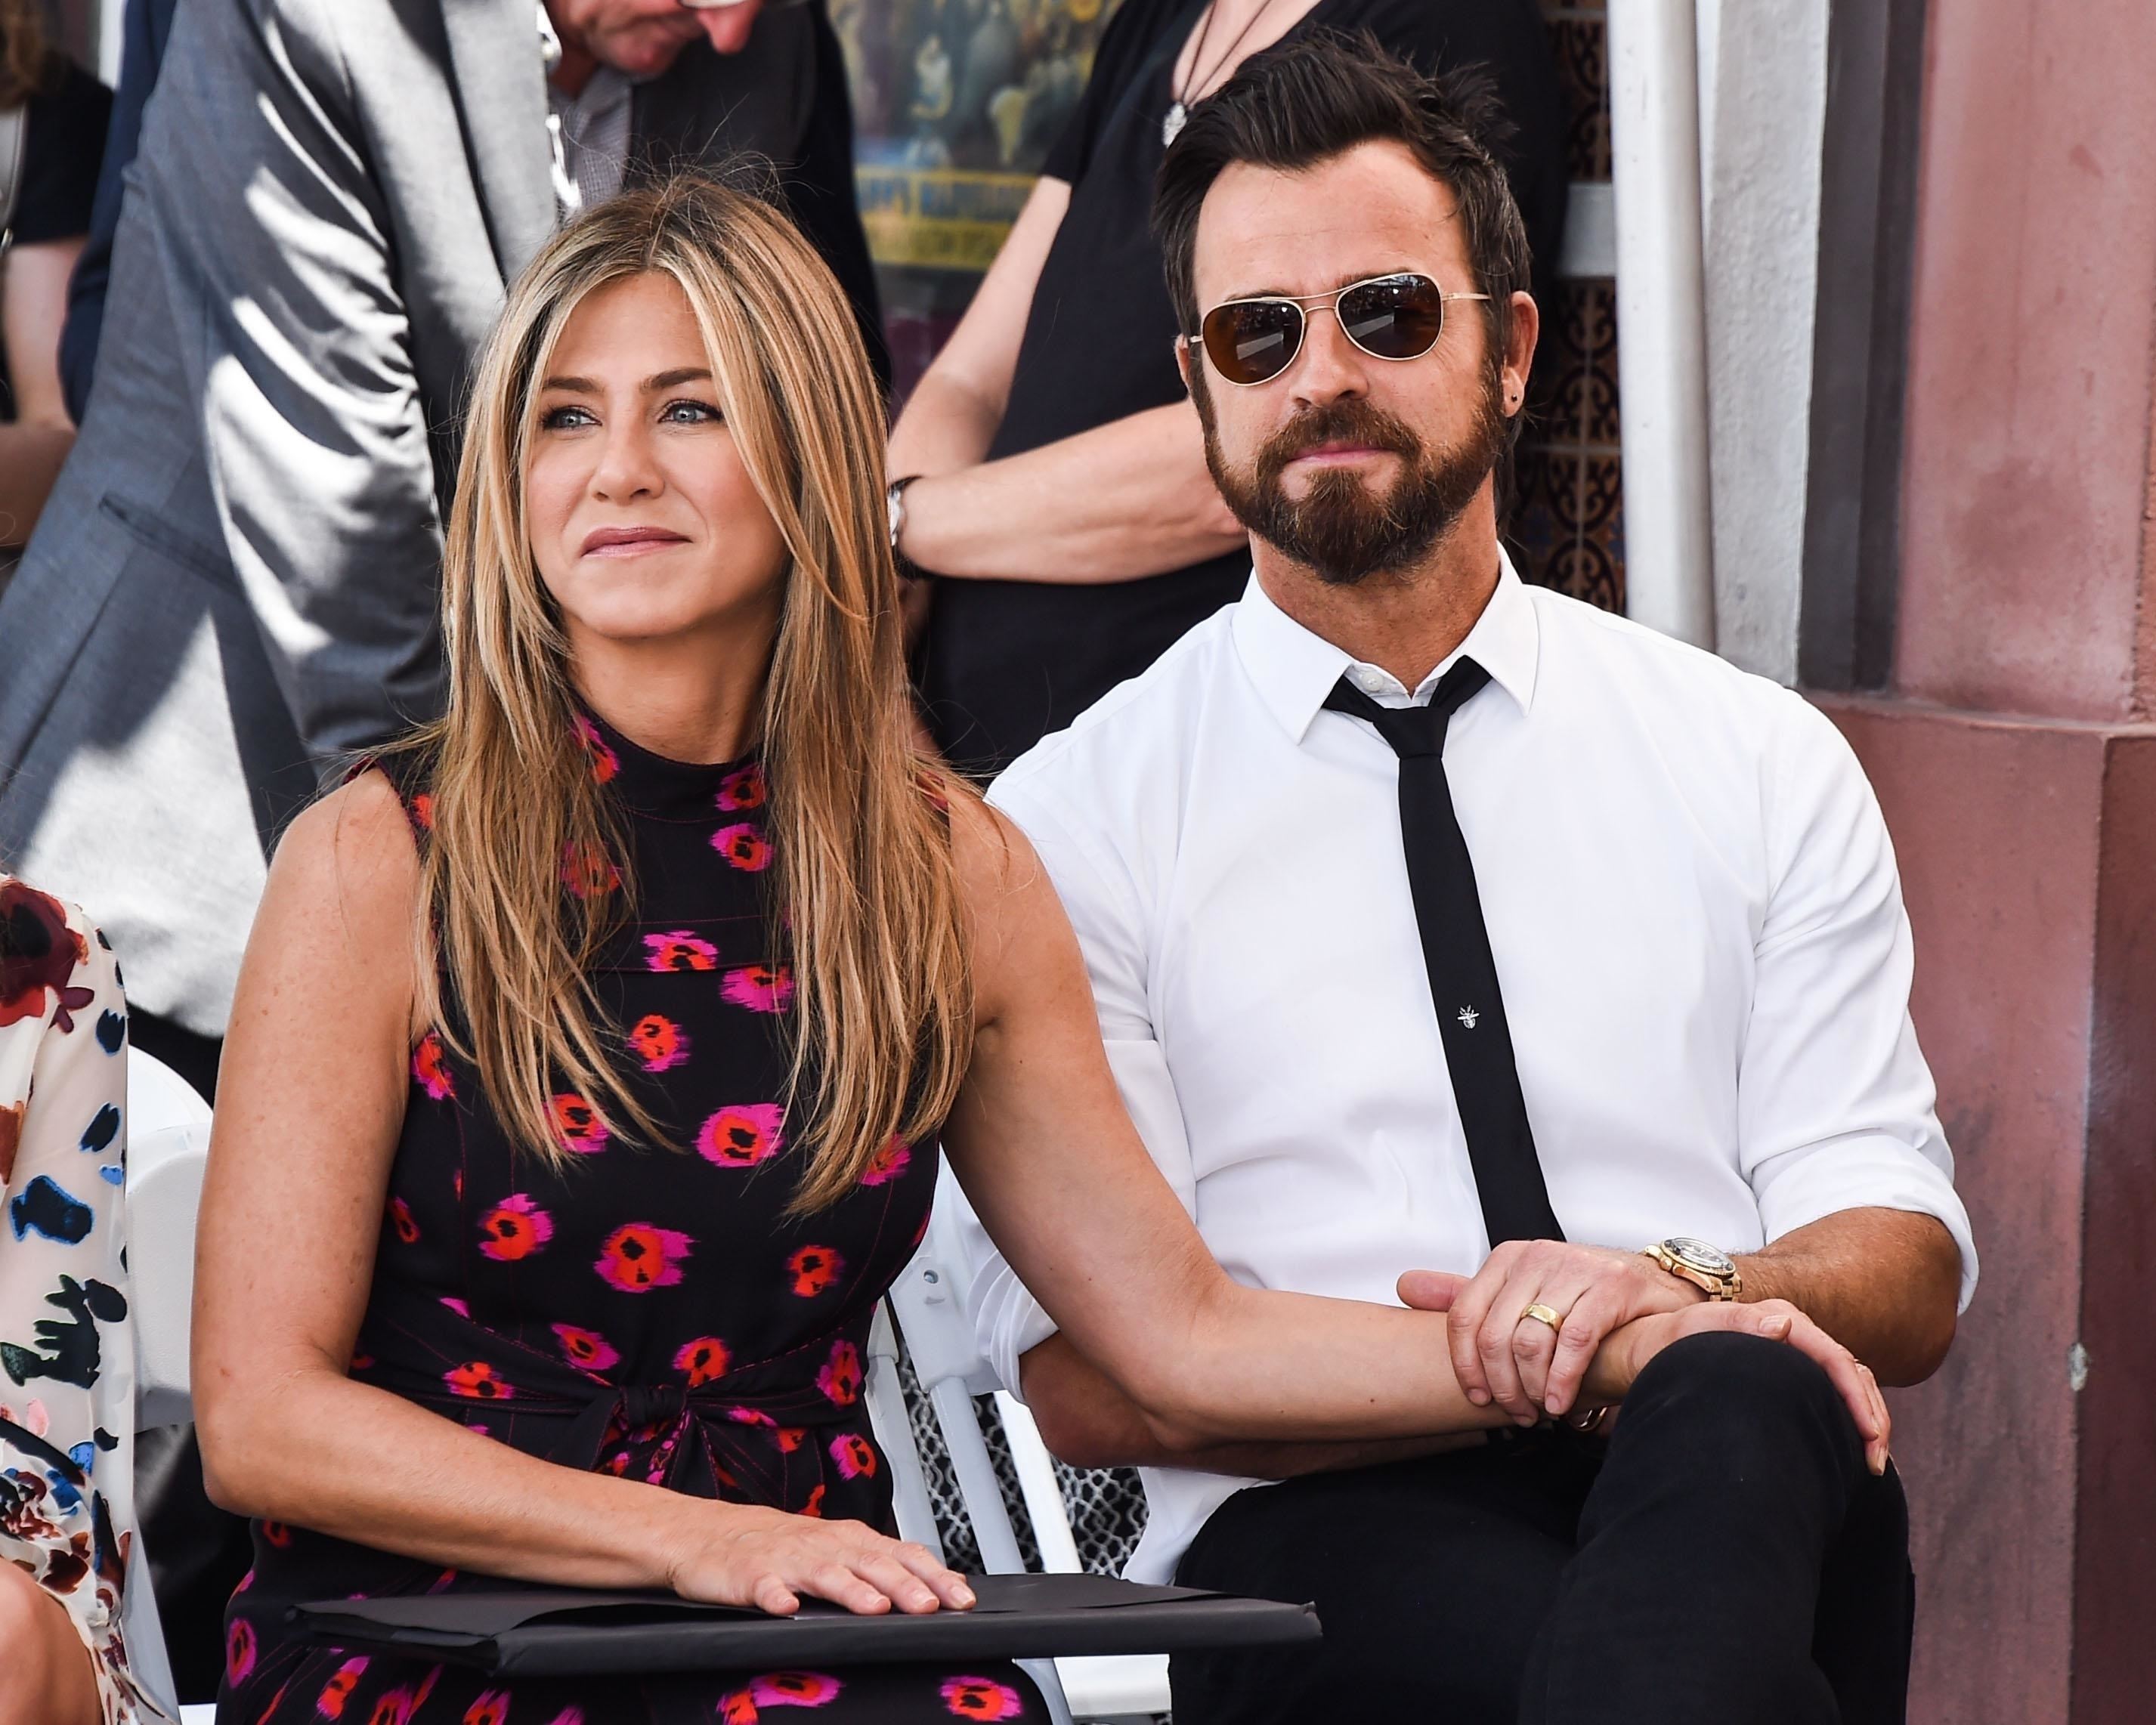 Was Justin Theroux acting single before he and Jennifer Aniston split?